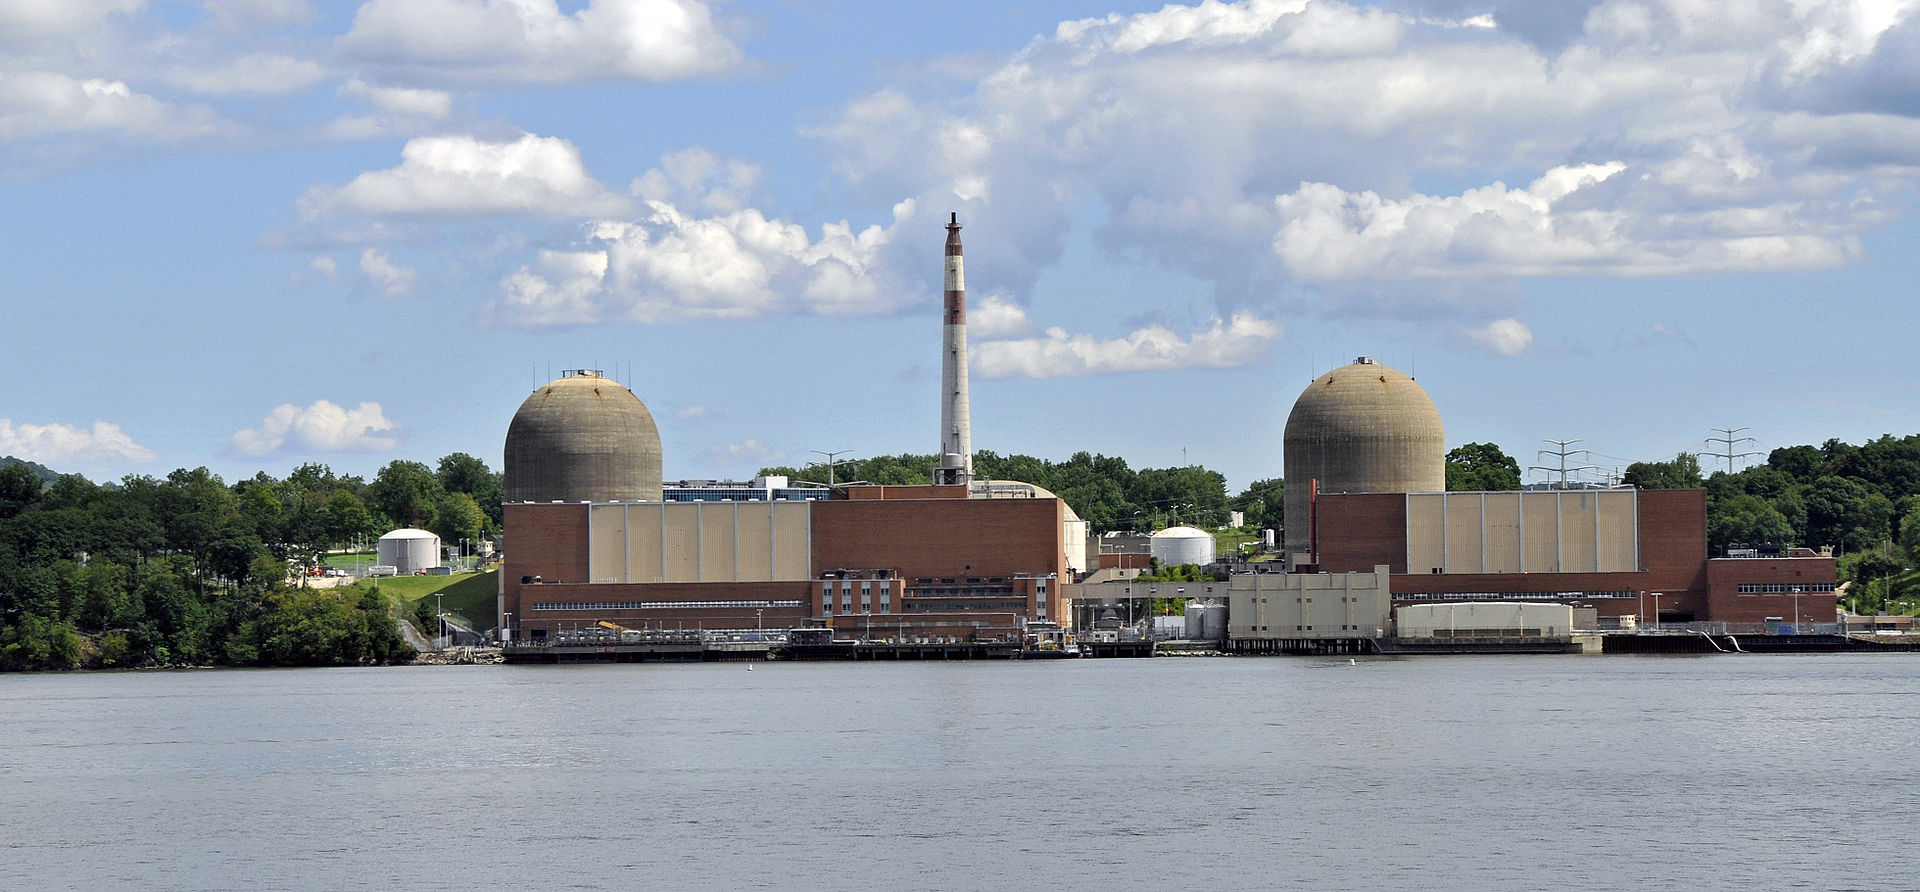 Radioactive leak at indian point nuclear plant is it a disaster waiting to happen